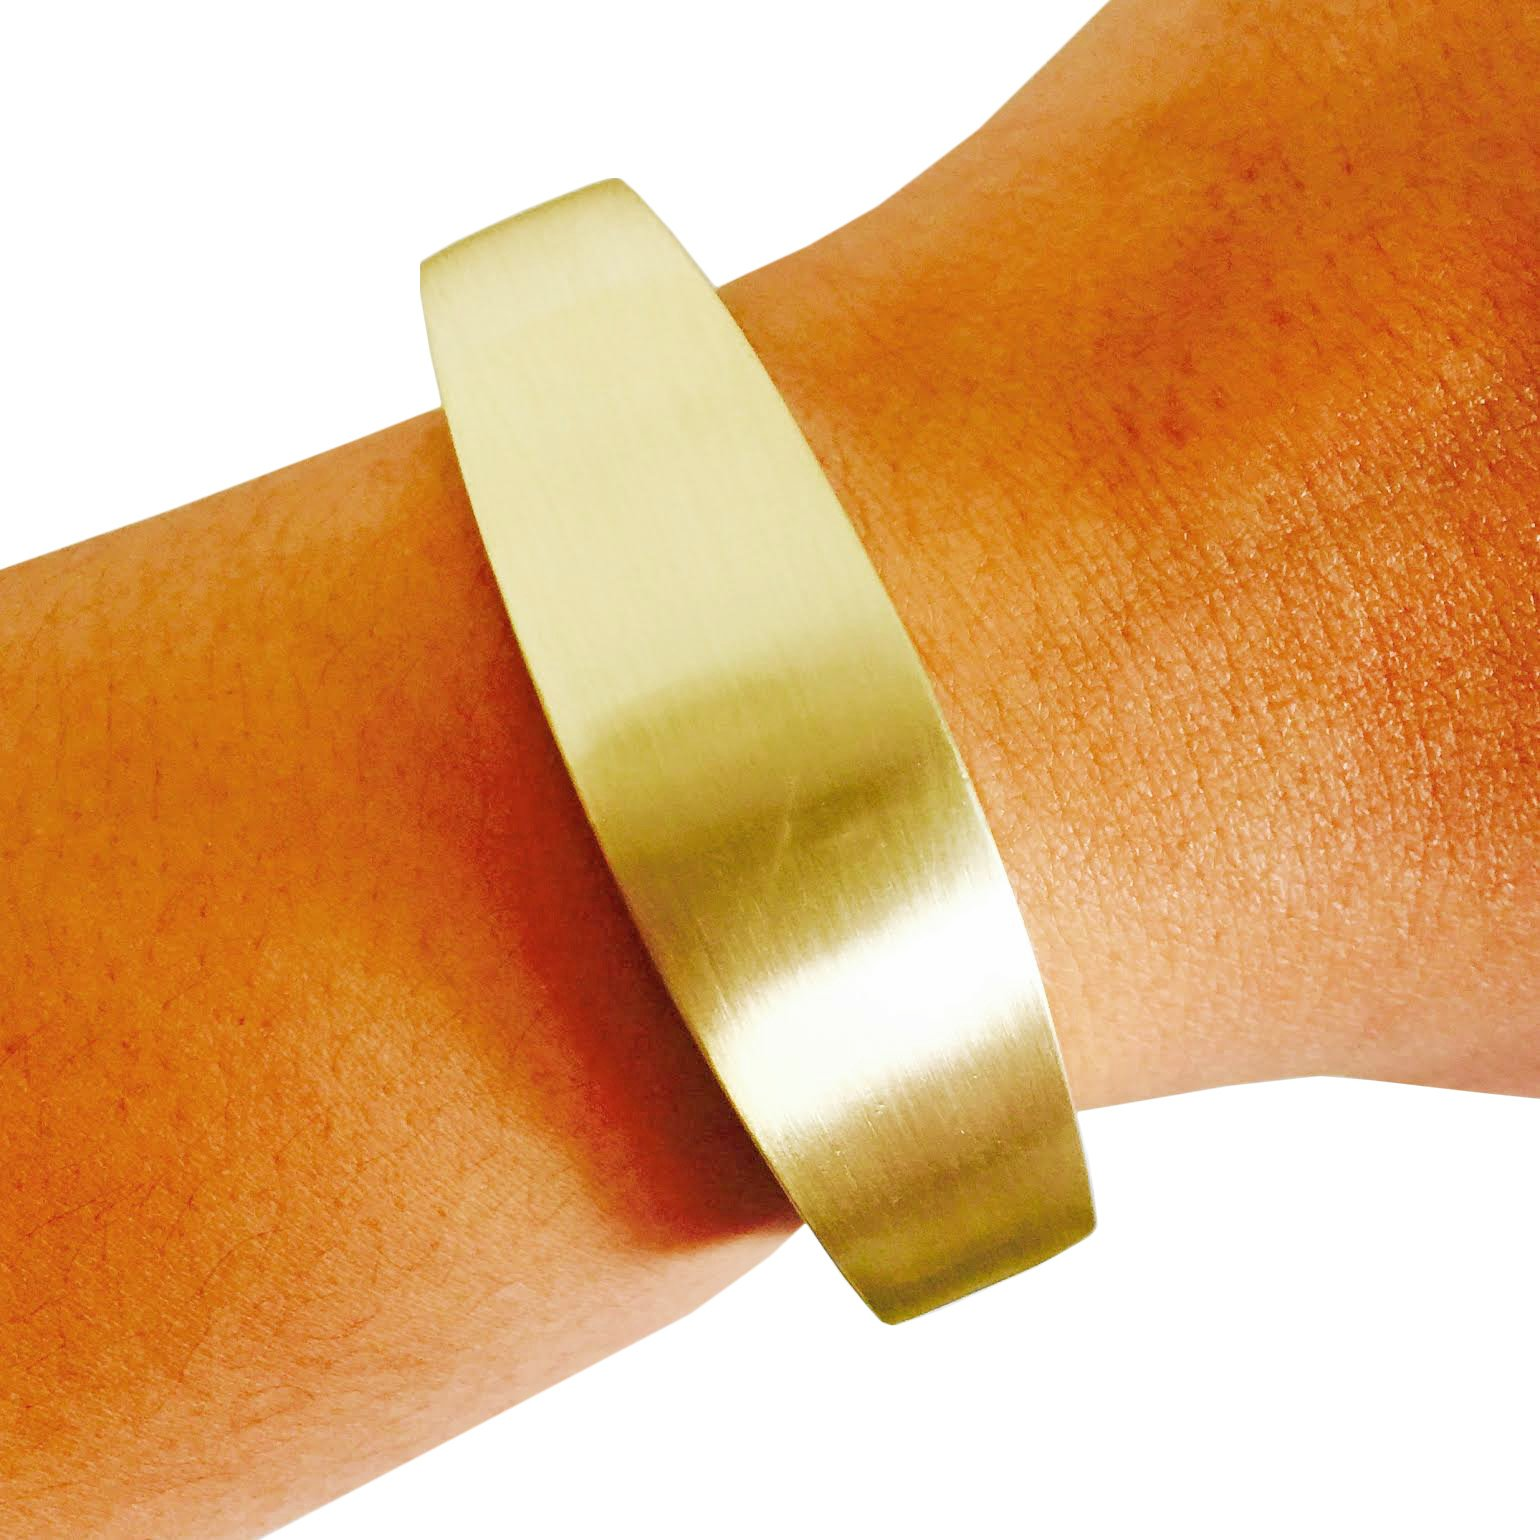 Fitbit Bracelet for Fitbit Flex Activity Trackers - The TORY Hinge Bangle Fitbit Bracelet (Brushed Gold, S/M)